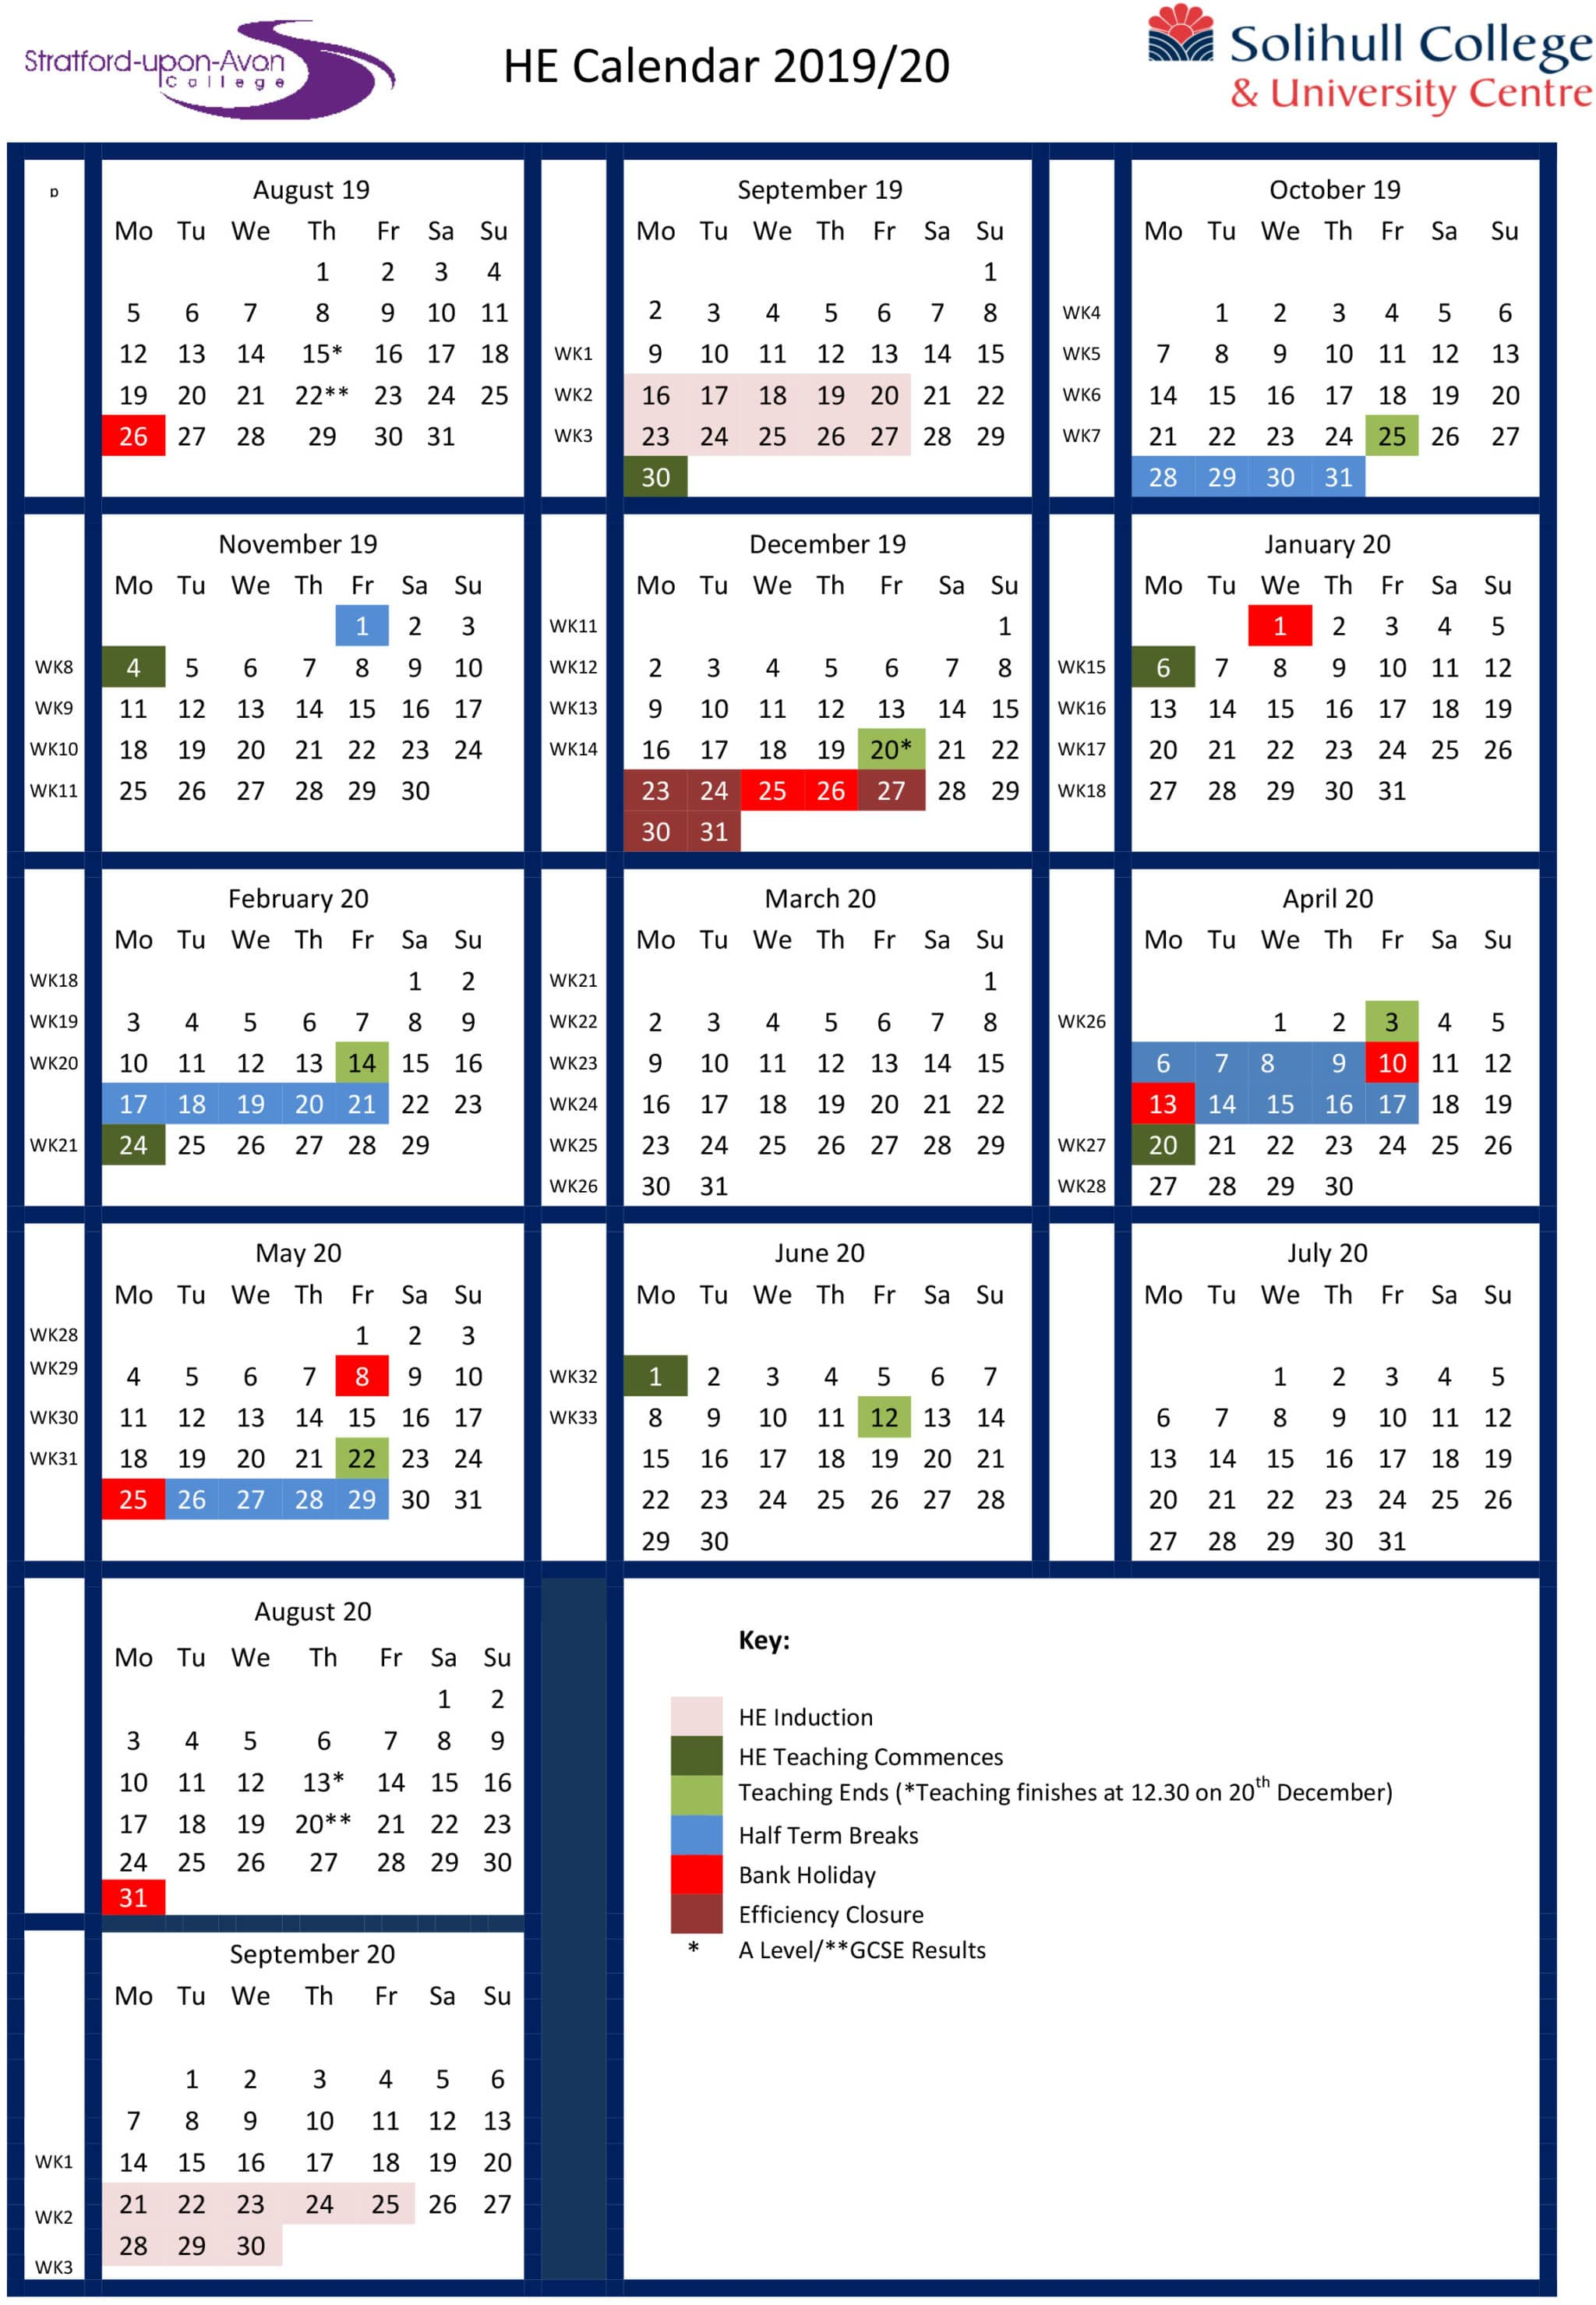 Higher Education (University Level) Calendar 2019 - 2020